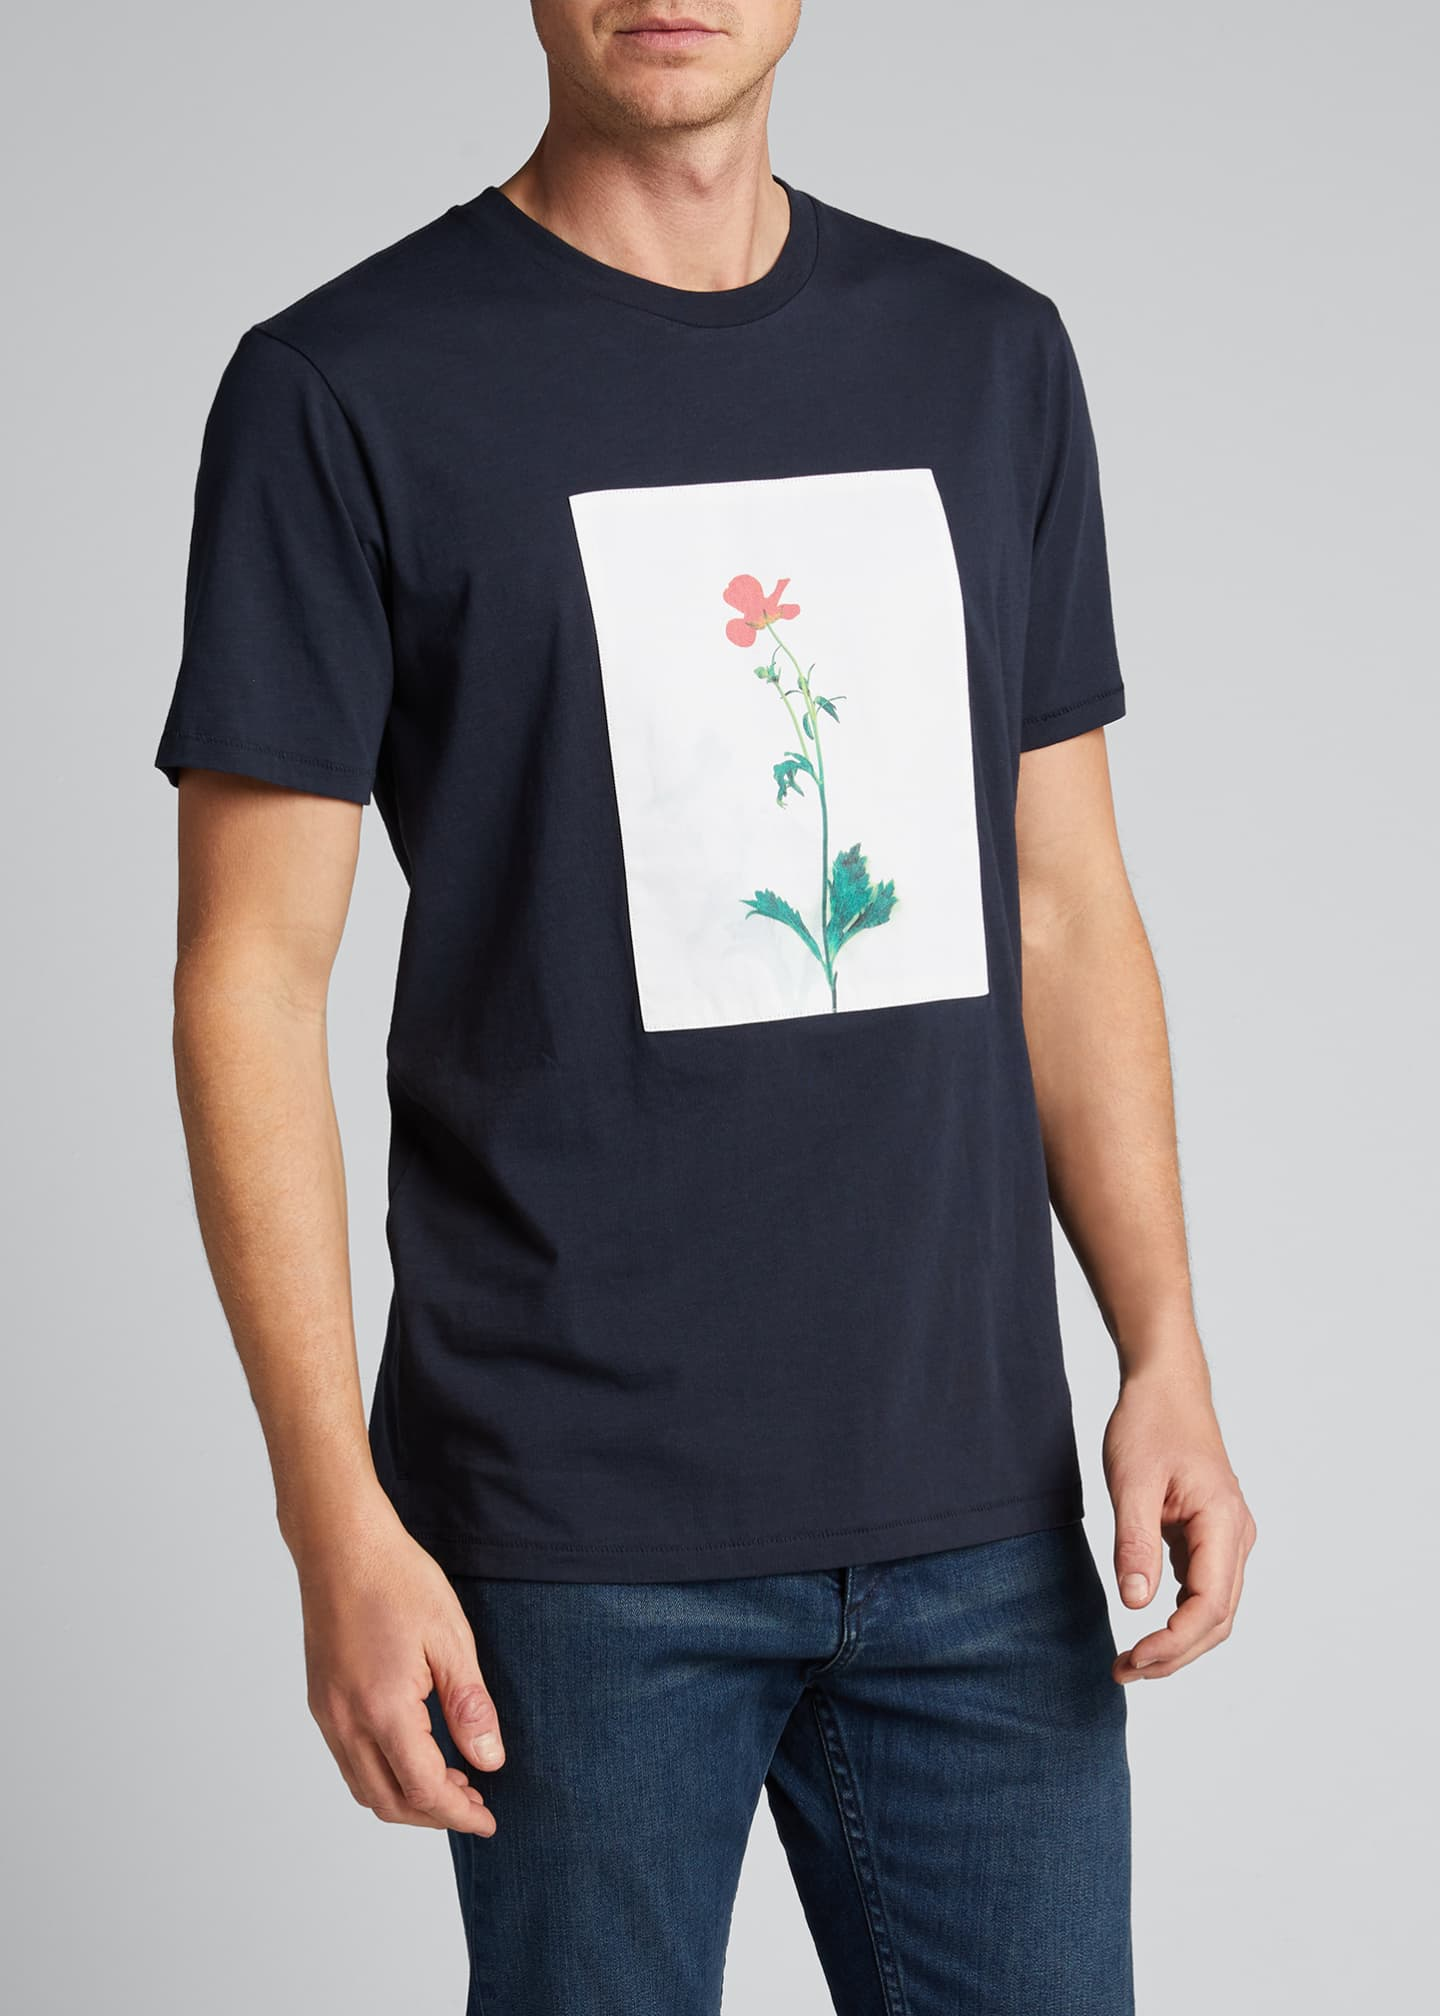 Image 3 of 5: Men's Flower Graphic T-Shirt